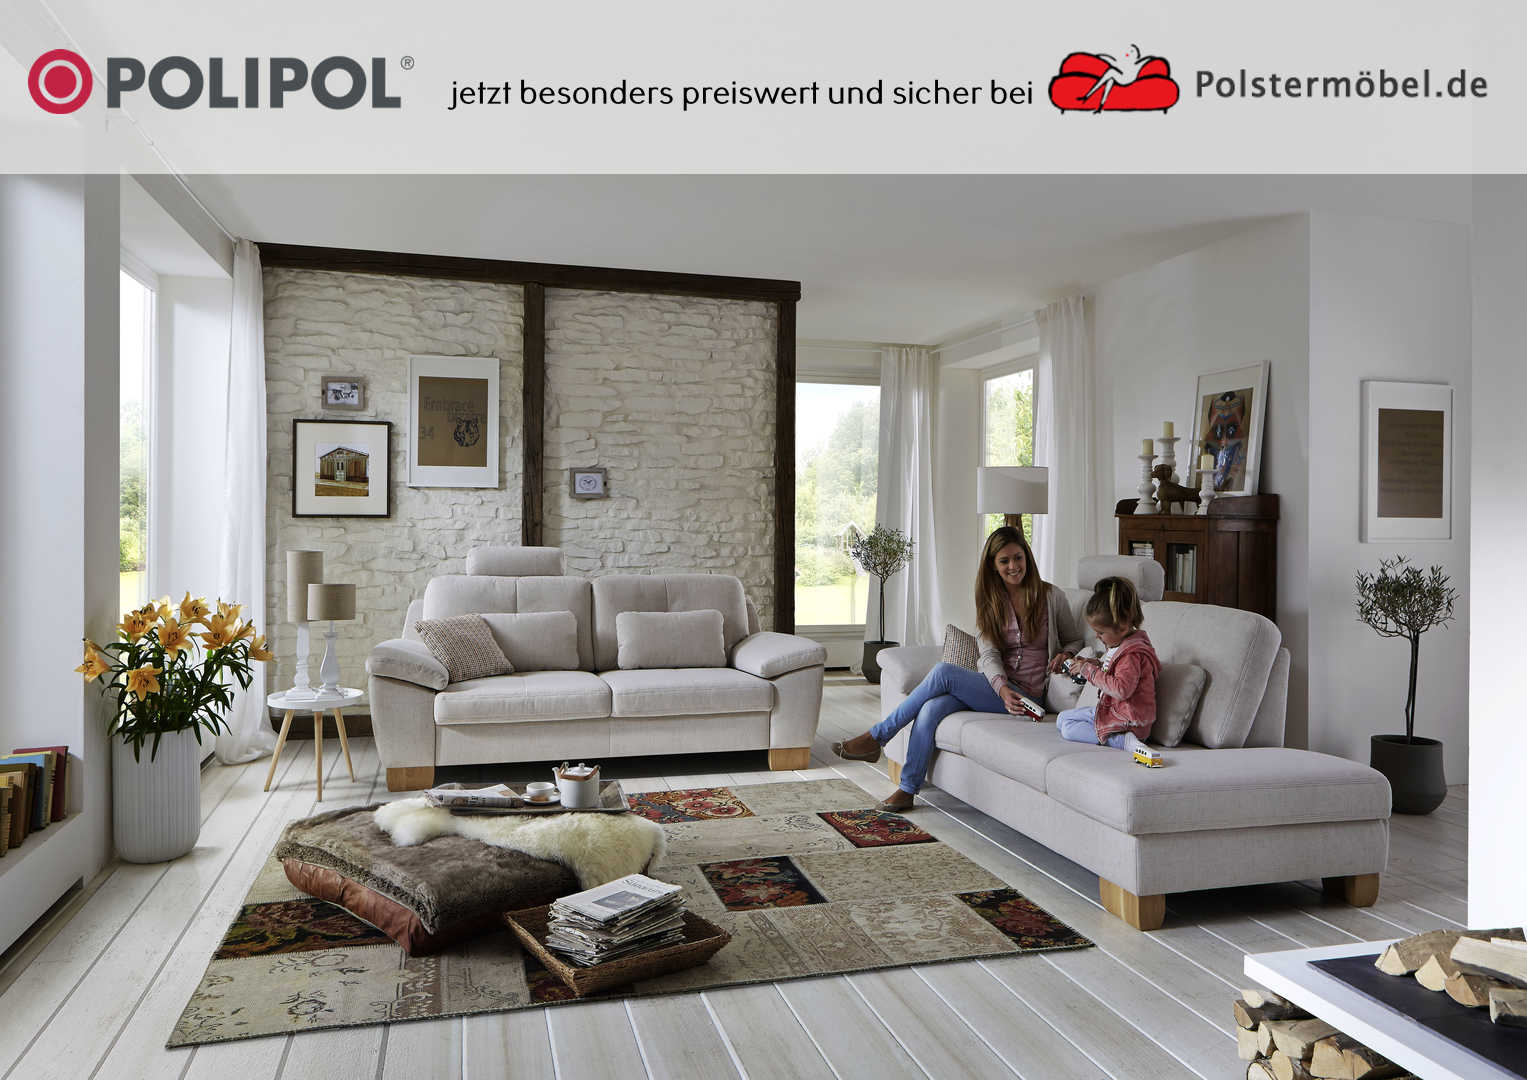 polipol cantara ks 179116 polsterm. Black Bedroom Furniture Sets. Home Design Ideas